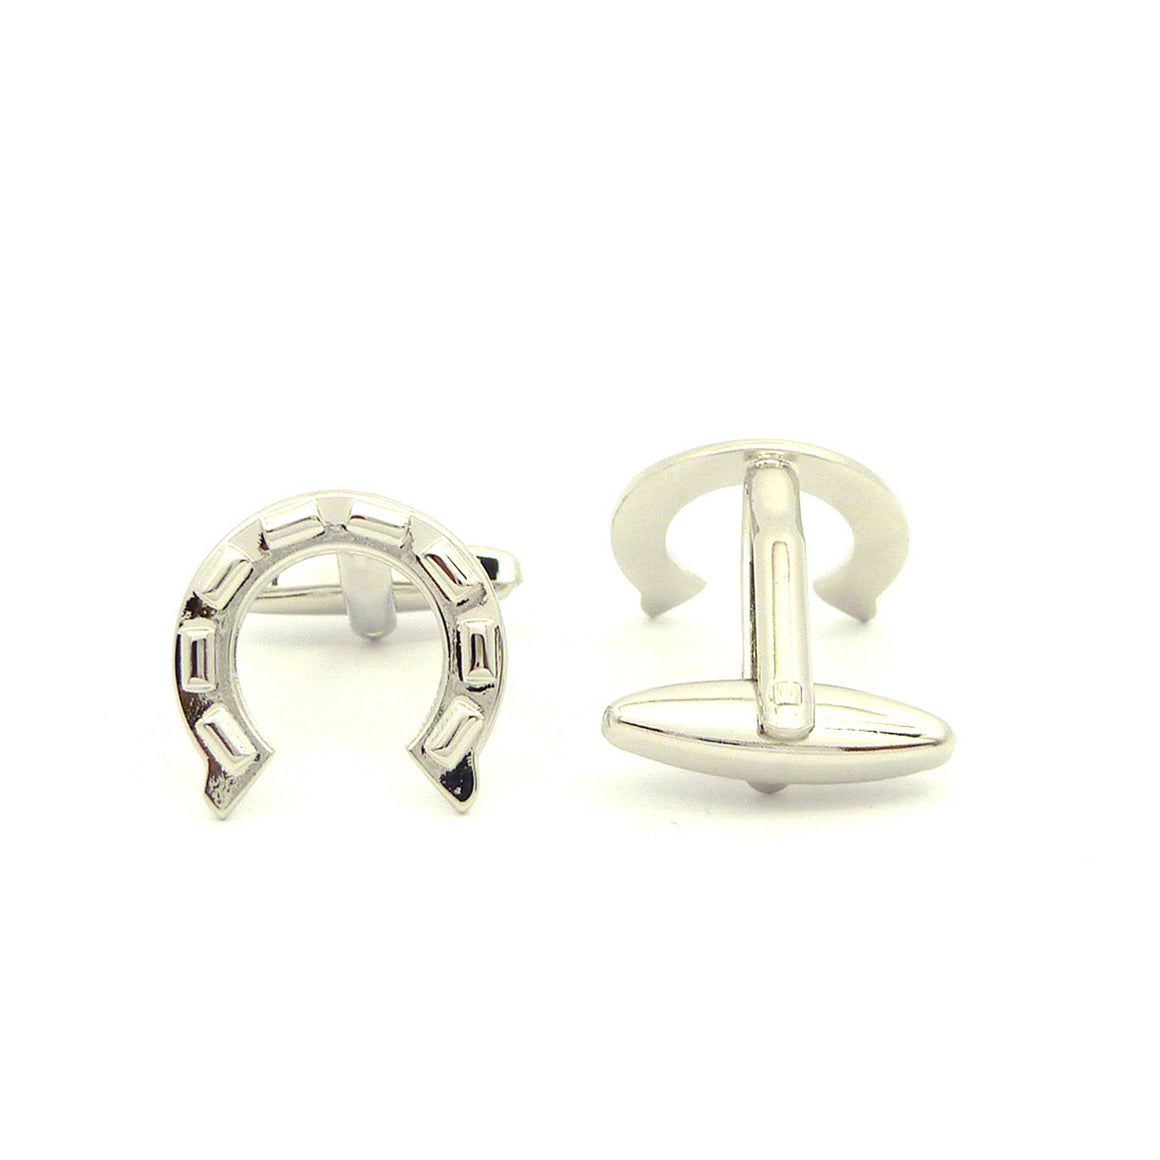 Wild Links - Silver Lucky Horseshoe Cufflinks